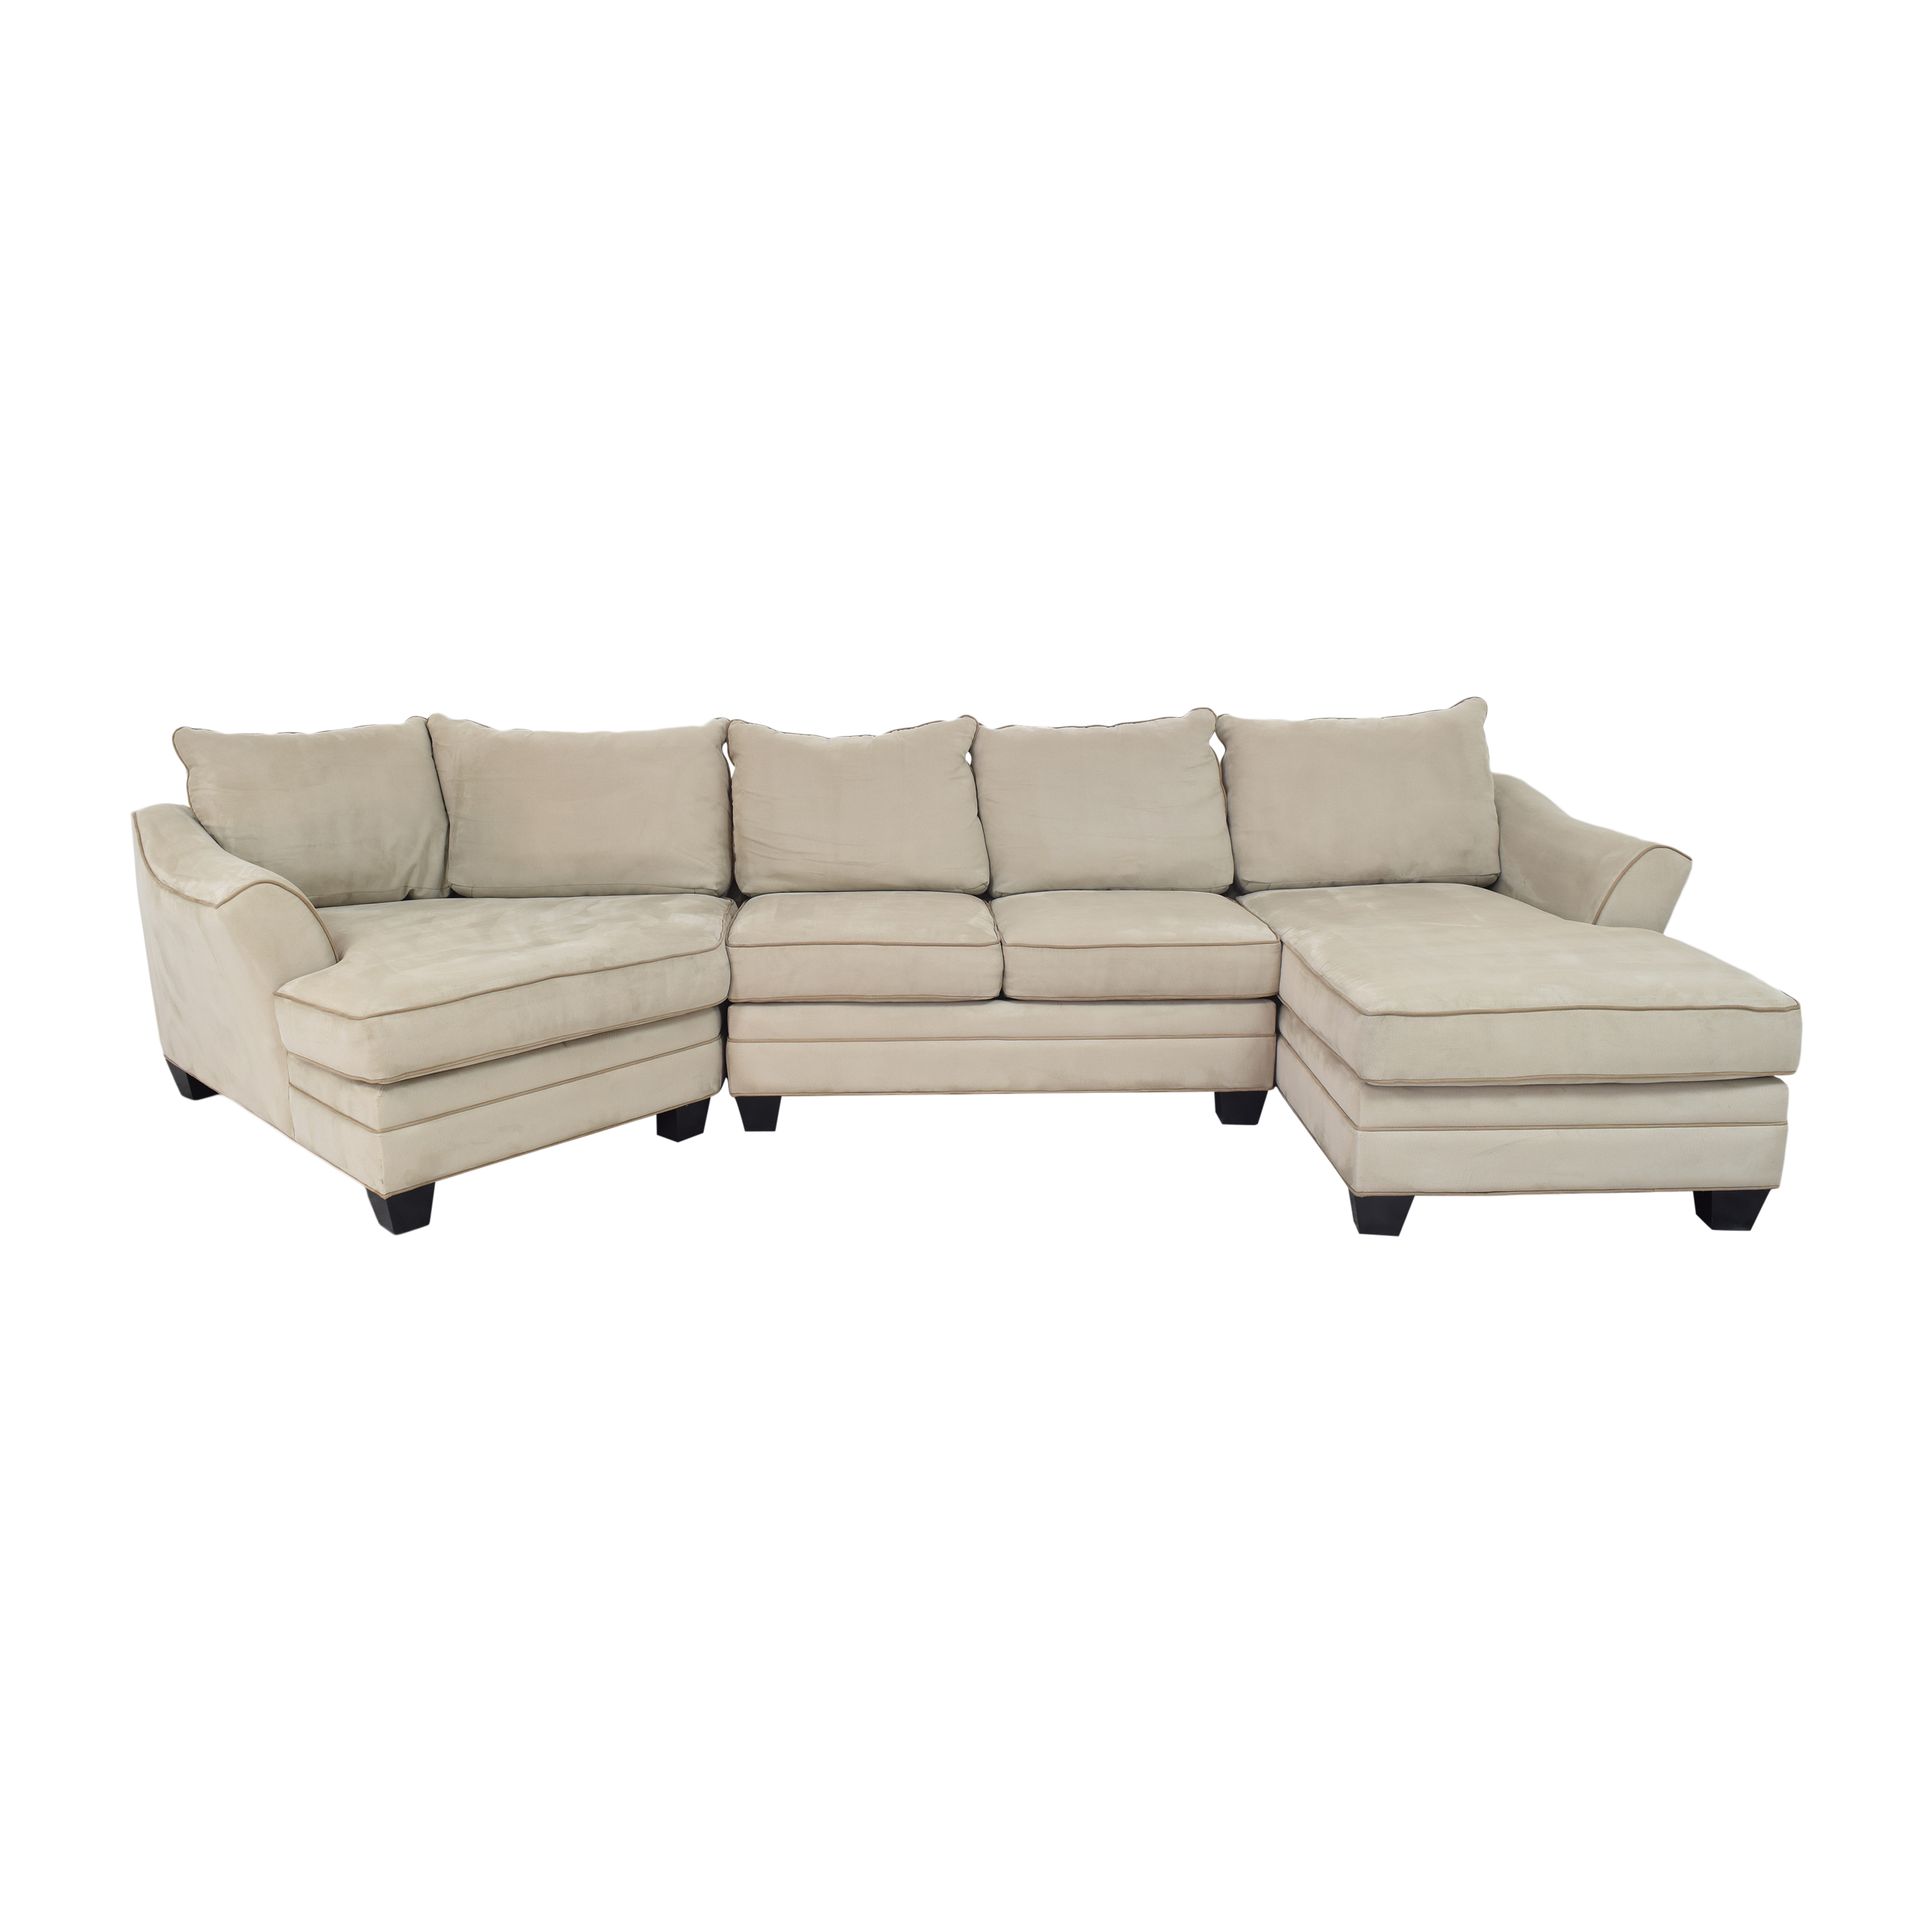 Raymour & Flanigan Raymour & Flanigan Foresthill Sectional Sofa price